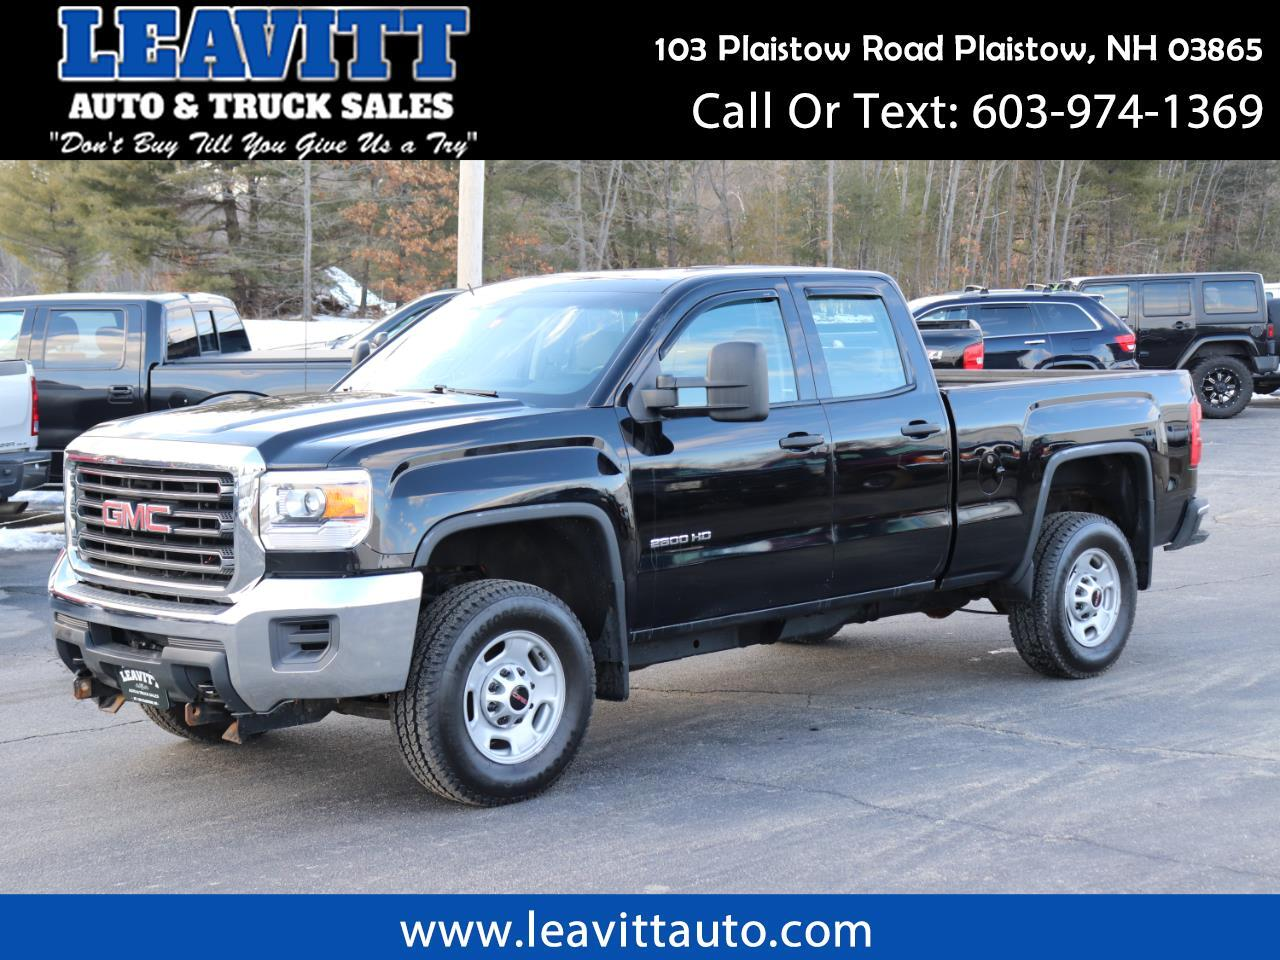 2015 GMC Sierra 2500HD DOUBLE CAB 4X4 6.0L GAS